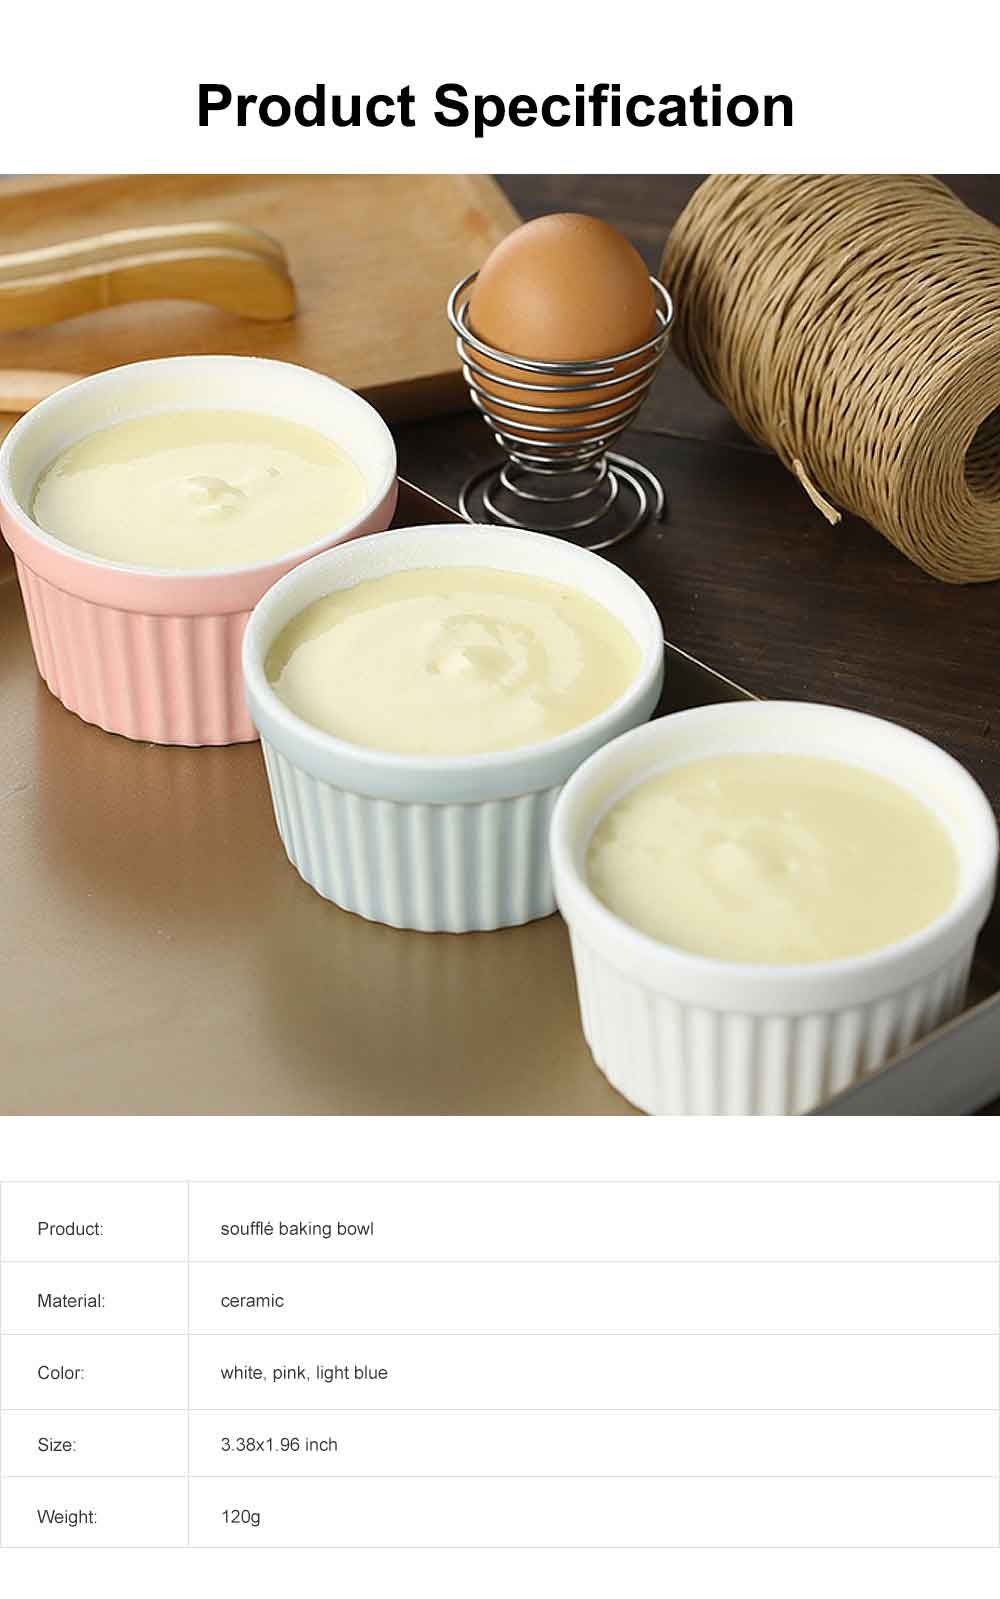 Round Ceramic Baking Cup, High Temperature Resistant Pudding Cup, Durable Souffle Baking Bowl 6